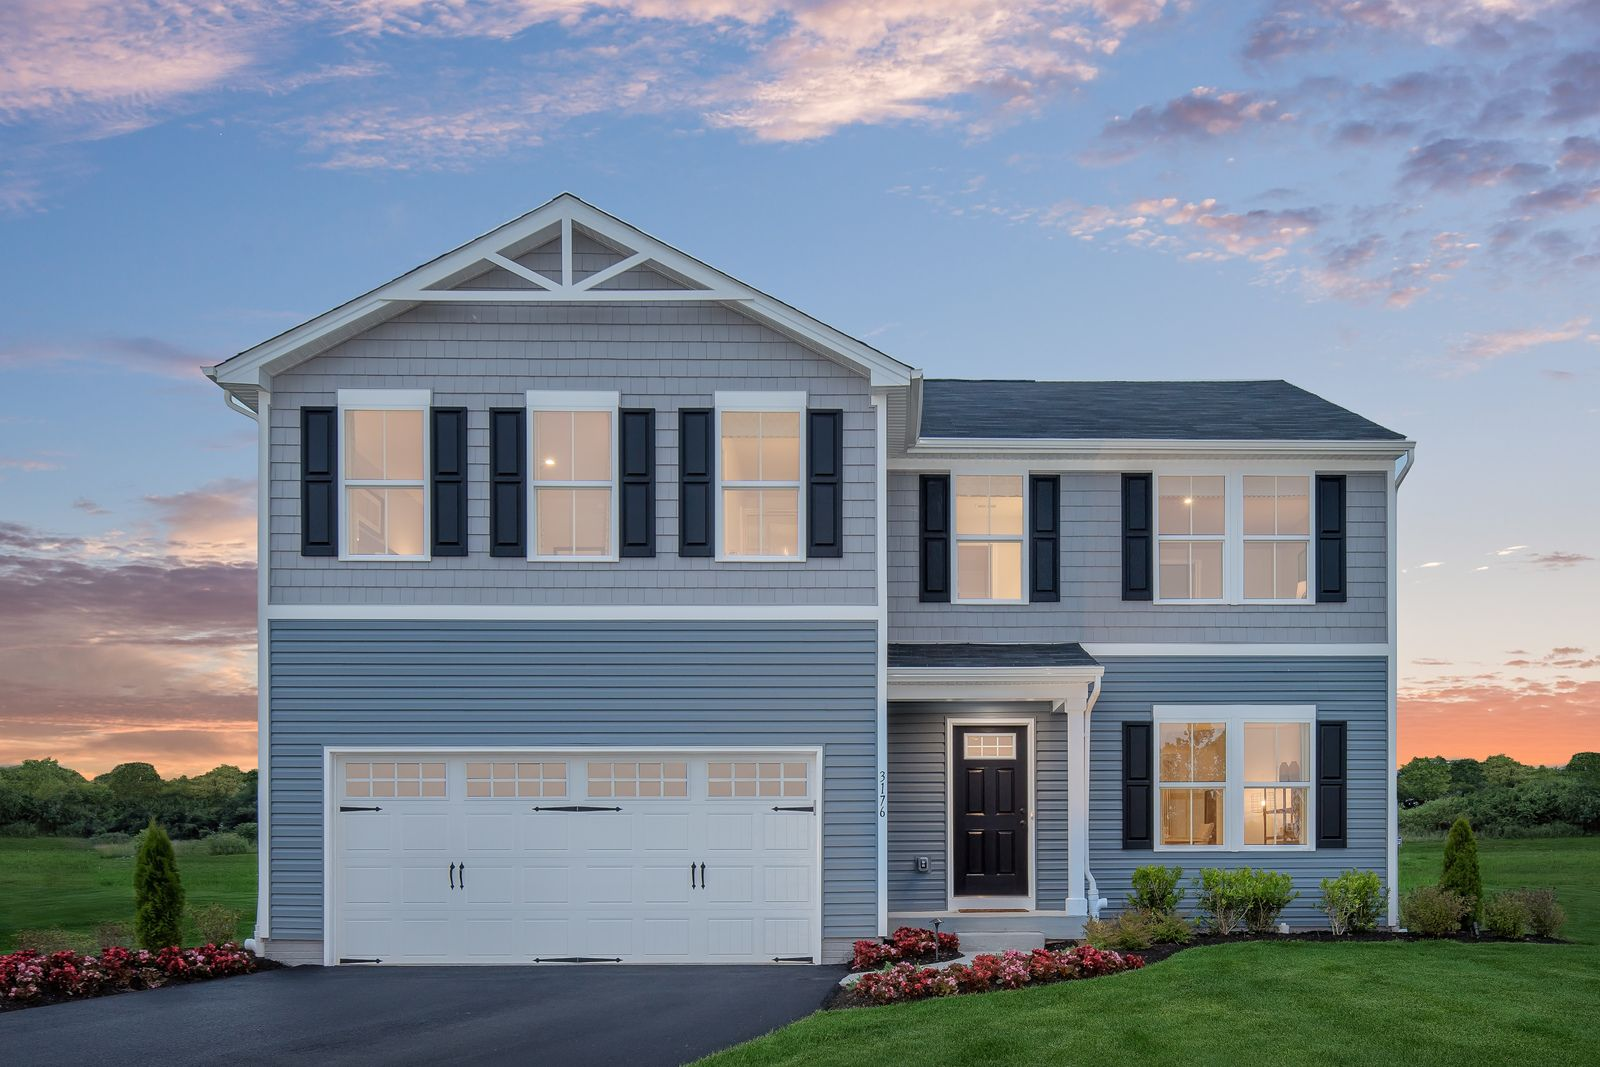 Single Family for Sale at The Seasons - Plan 2203 3186 Fox Run Road Dover, Pennsylvania 17315 United States